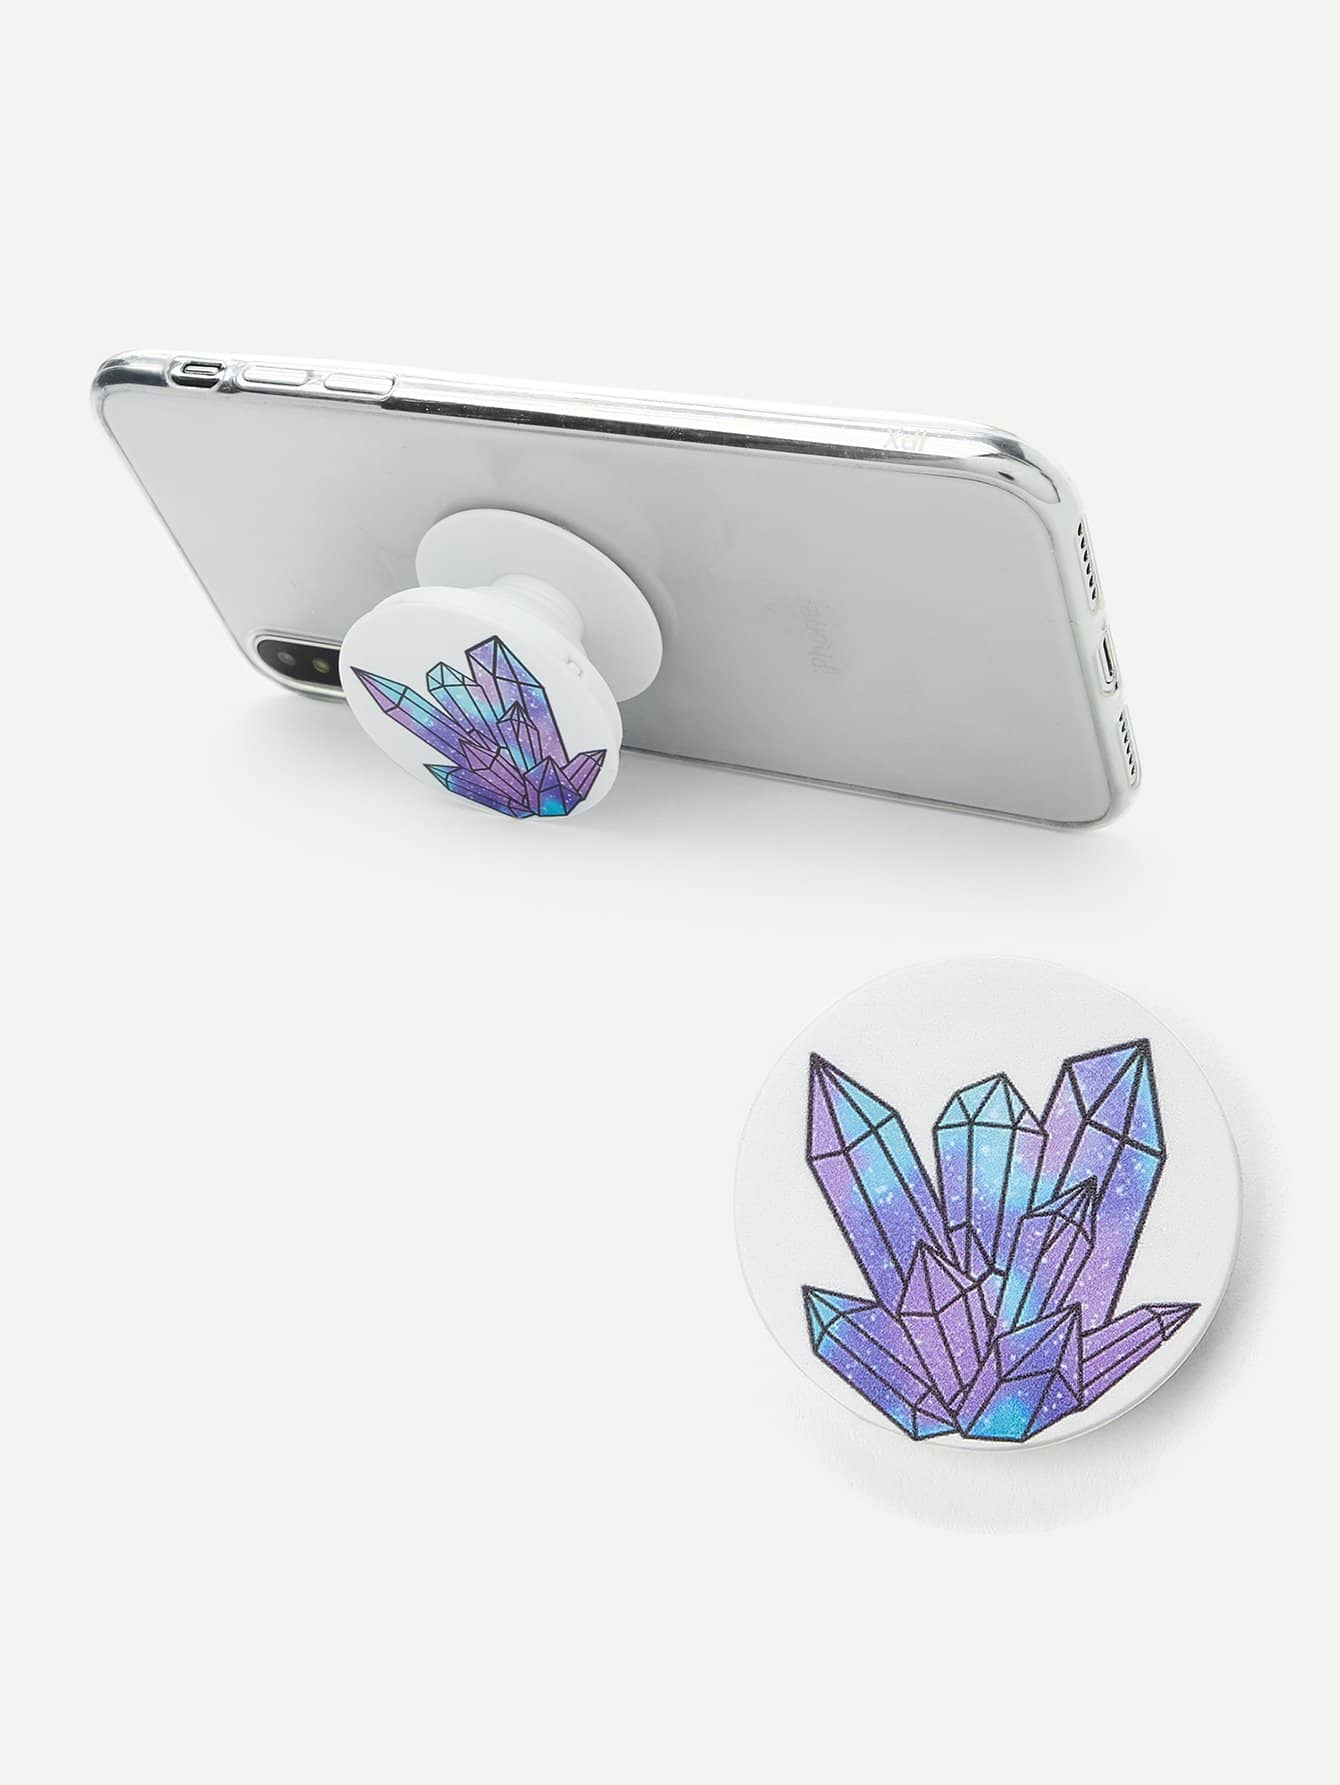 Crystal Pattern Round Portable Phone Holder convenient folding portable multifunctional phone holder red